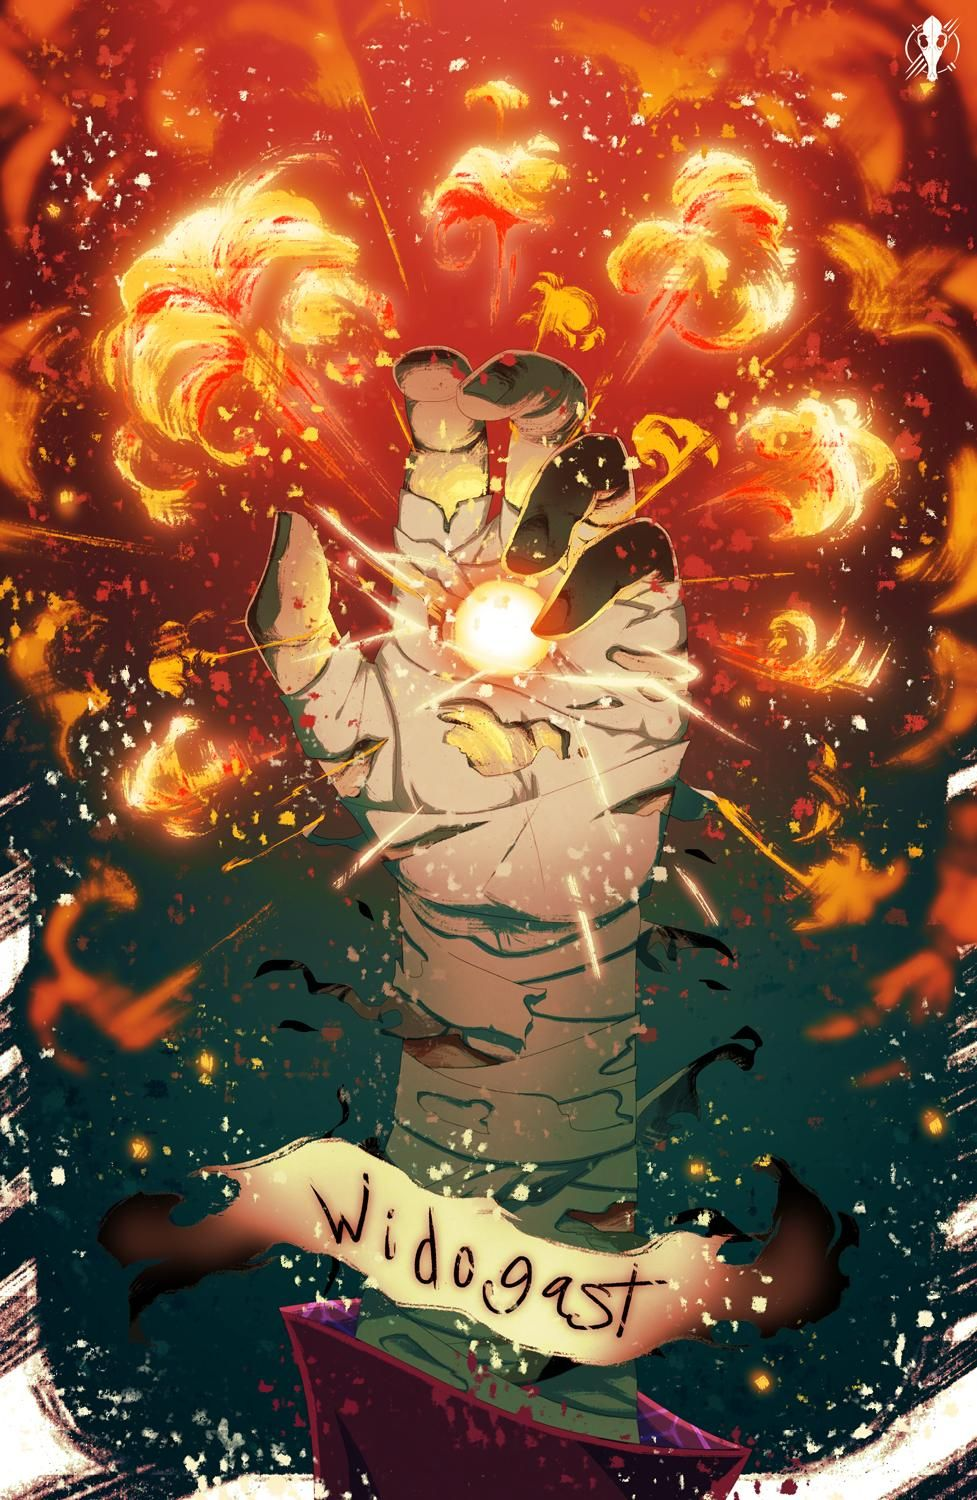 300 Caleb Widogast Ideas Critical Role Critical Role Fan Art Critical Role Campaign 2 Our playlists are curated carefully by each critical role cast member and our previous character playlists can be found on spotify via the official critical role account or you. caleb widogast ideas critical role